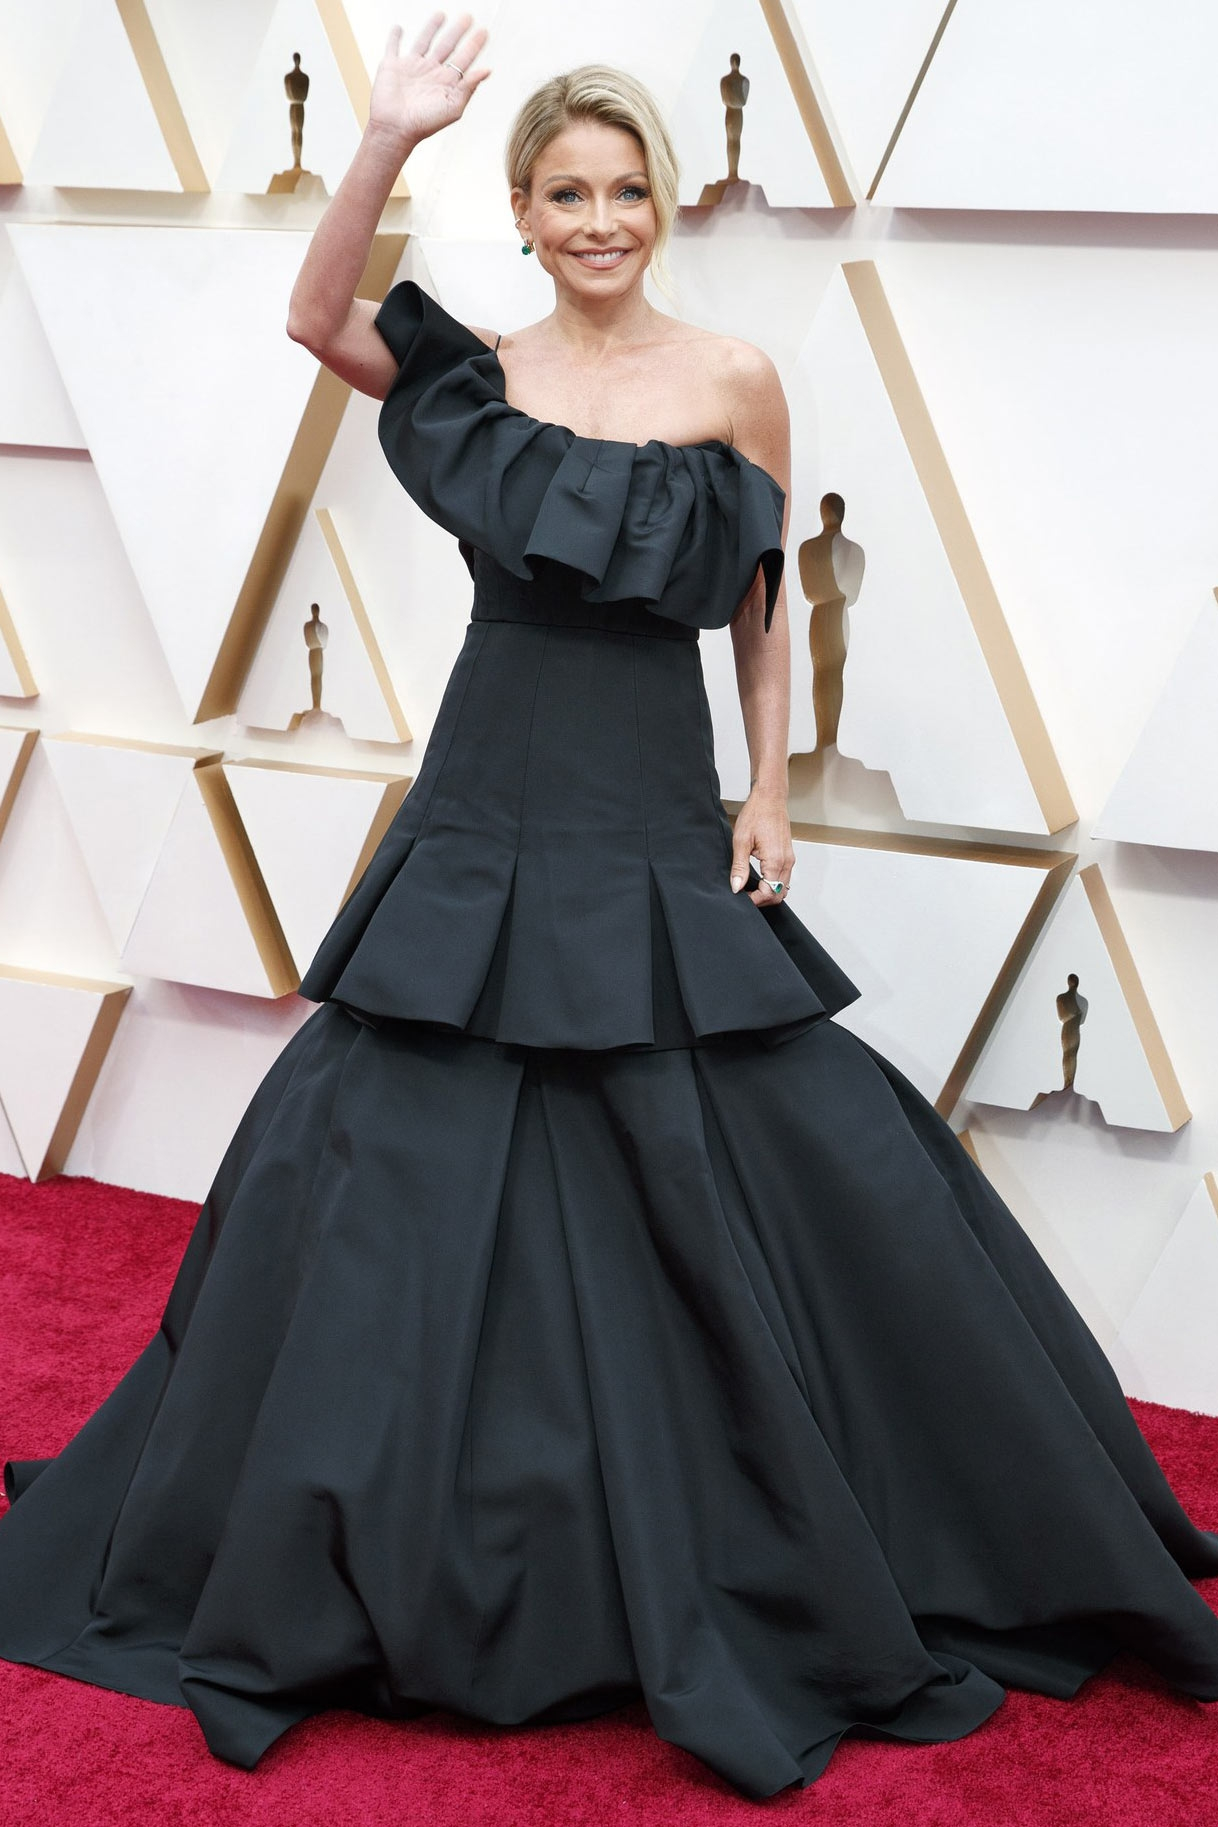 Oscars 2018: Samara Weaving takes the plunge in a low-cut